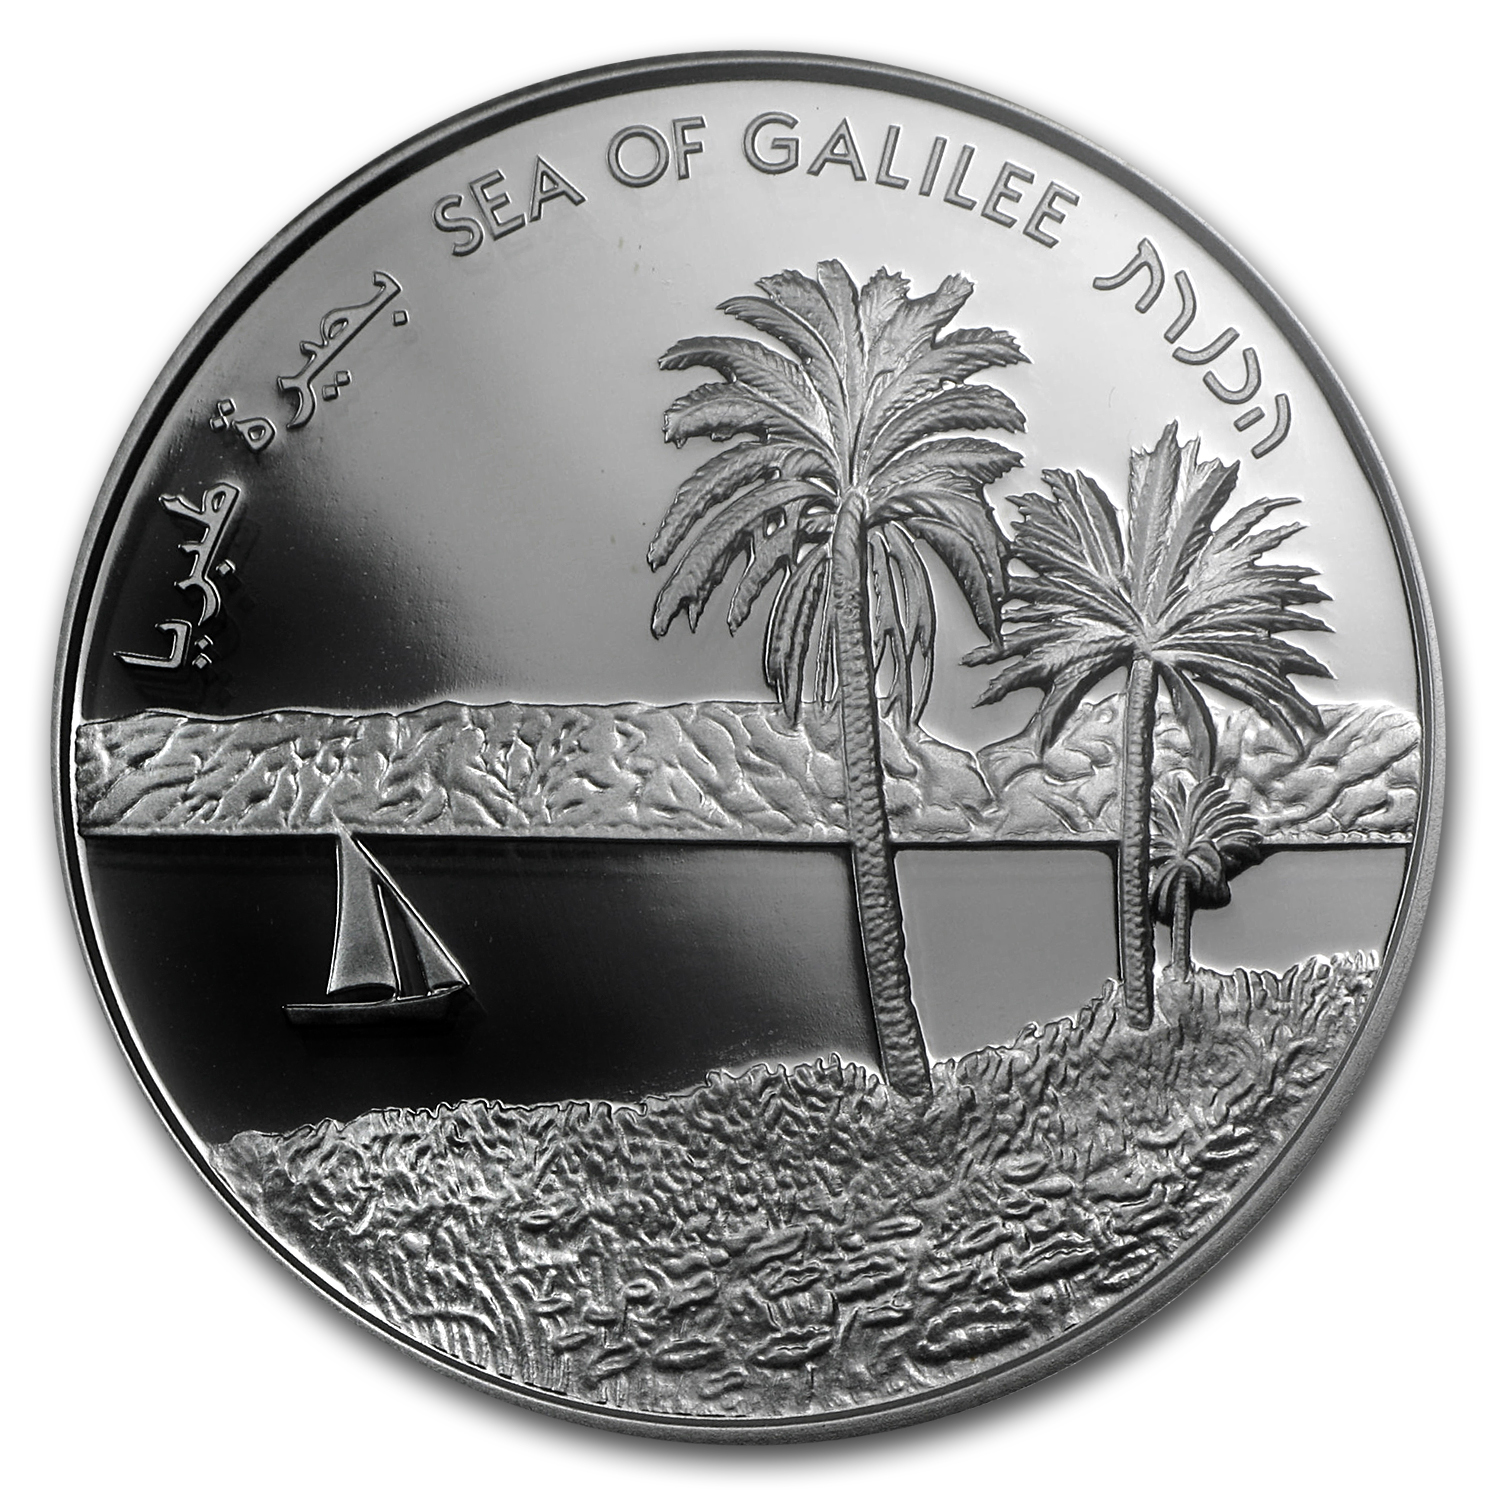 2012 Israel Sea of Galilee Silver 2 NIS PR-69 PCGS DCAM